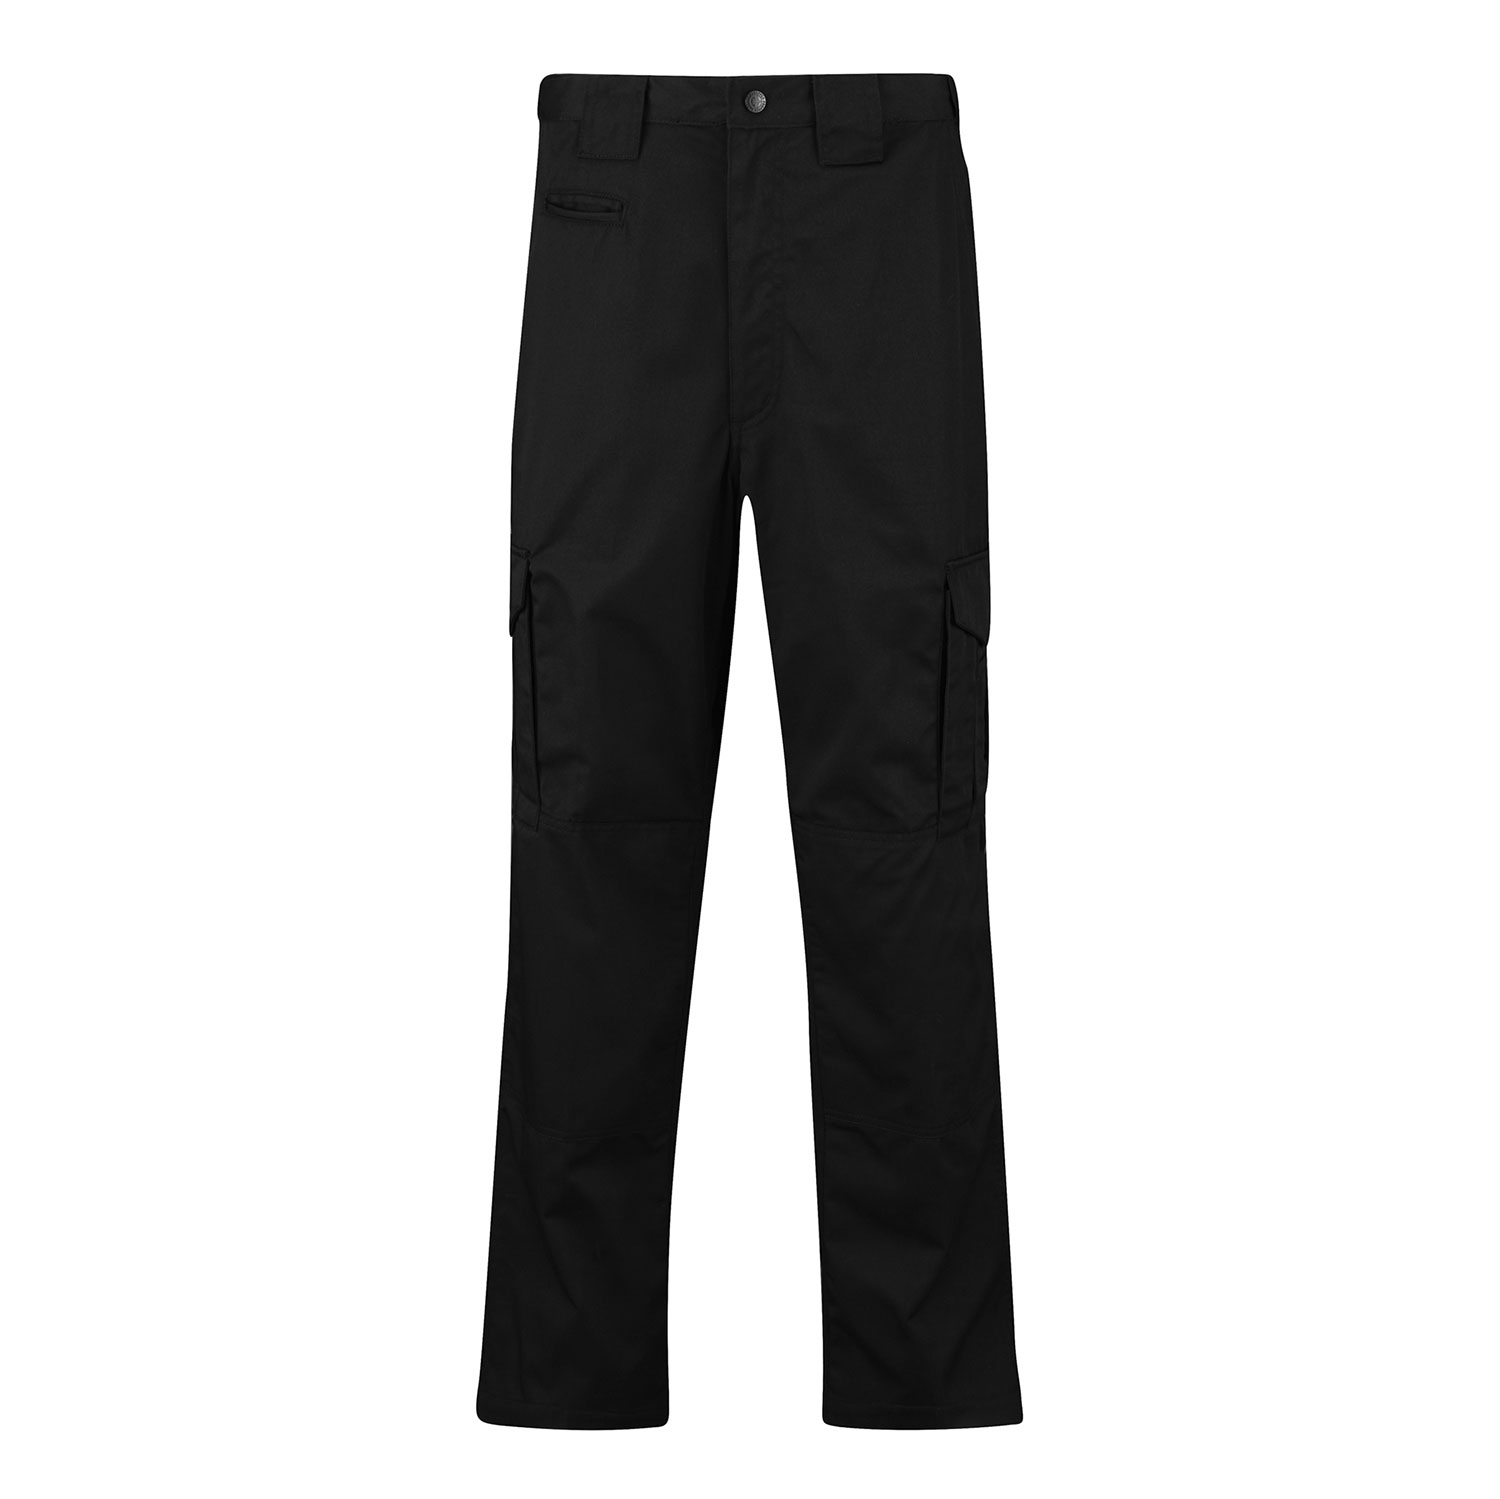 Propper Critical Response Twill EMS Pants